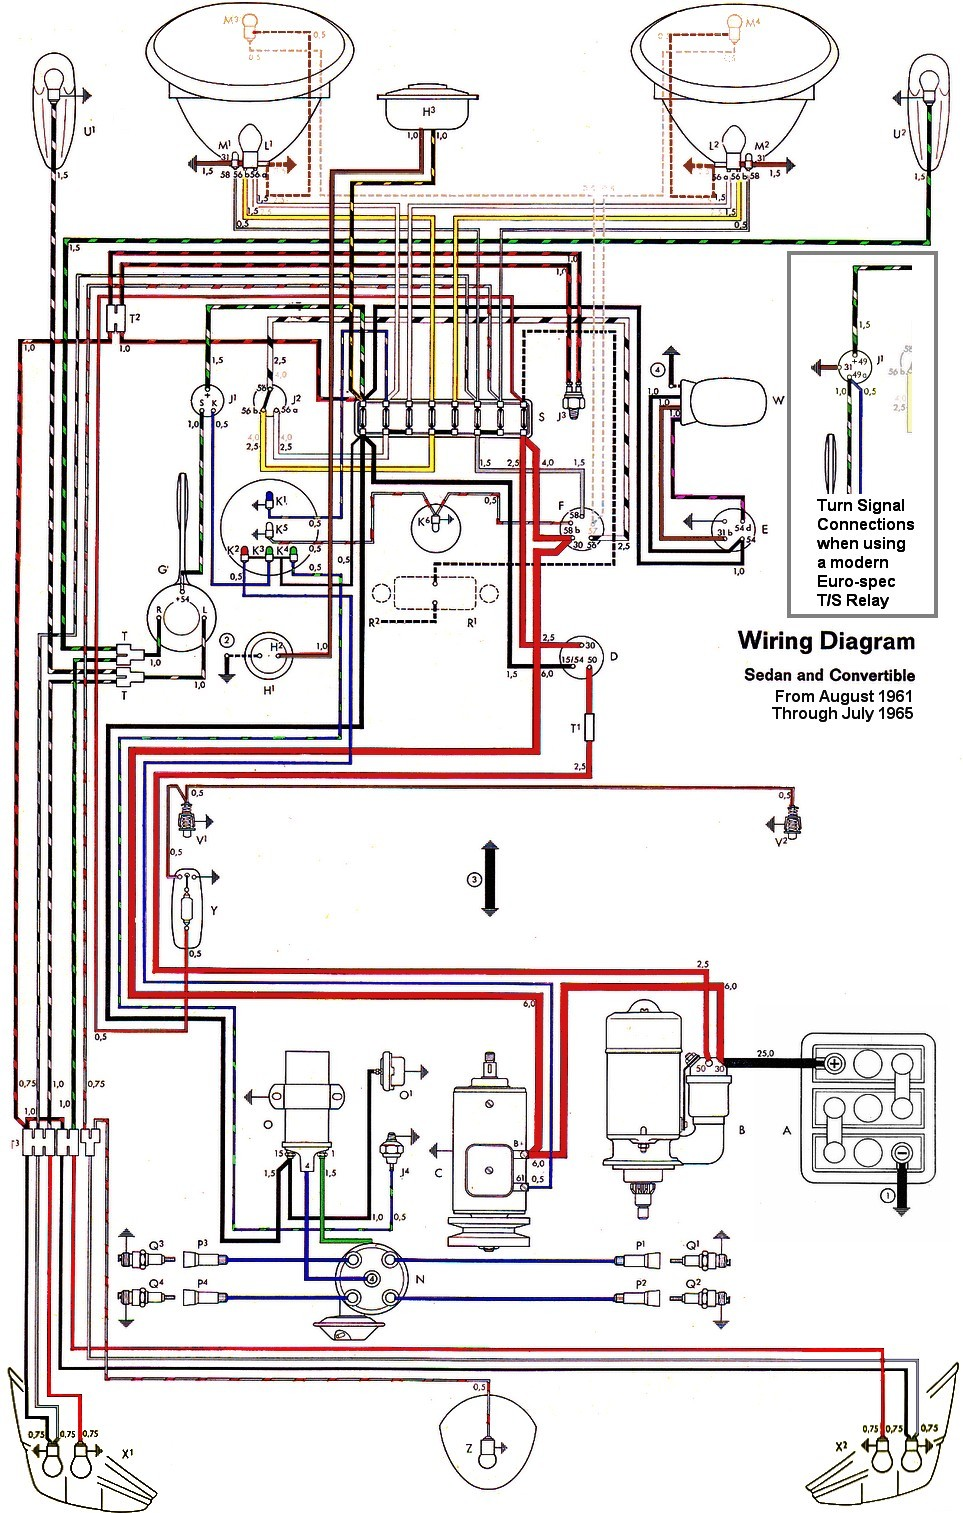 medium resolution of vw wiring diagrams electrical wiring diagrams 73 vw beetle wiring diagram volkswagen wiring diagram